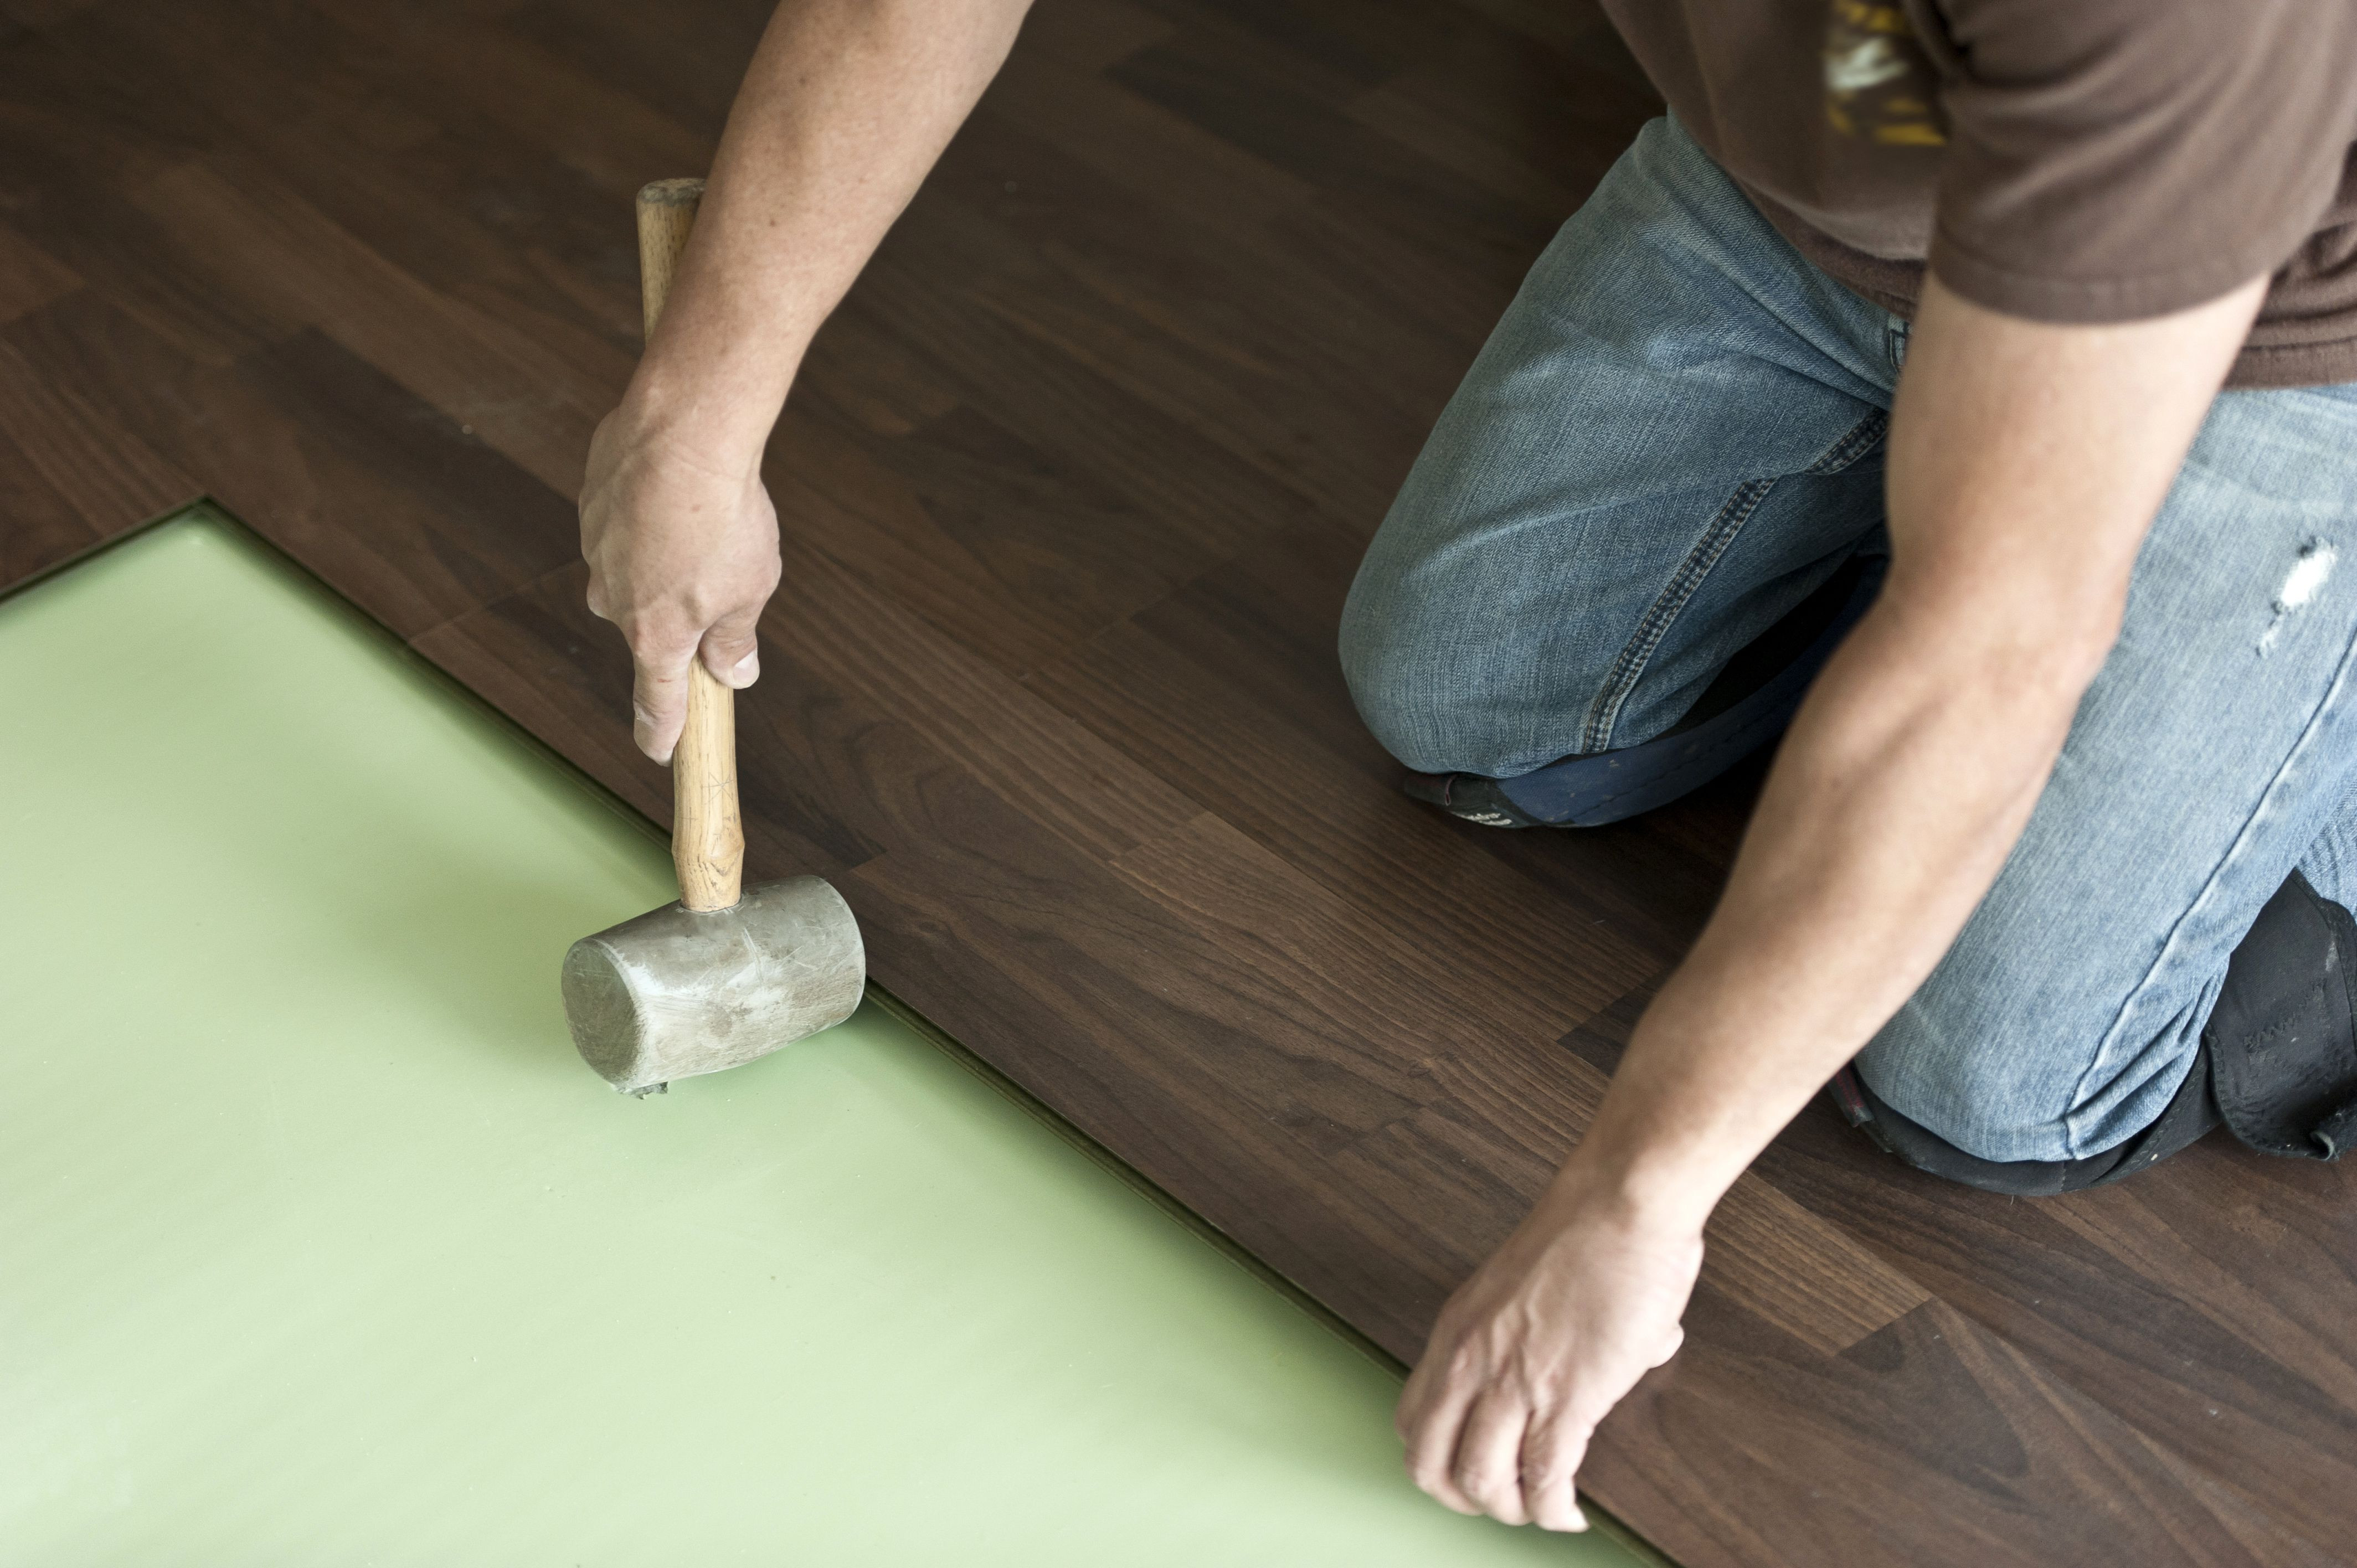 how to install 3 4 inch hardwood floors of can a foam pad be use under solid hardwood flooring regarding installing hardwood floor 155149312 57e967d45f9b586c35ade84a